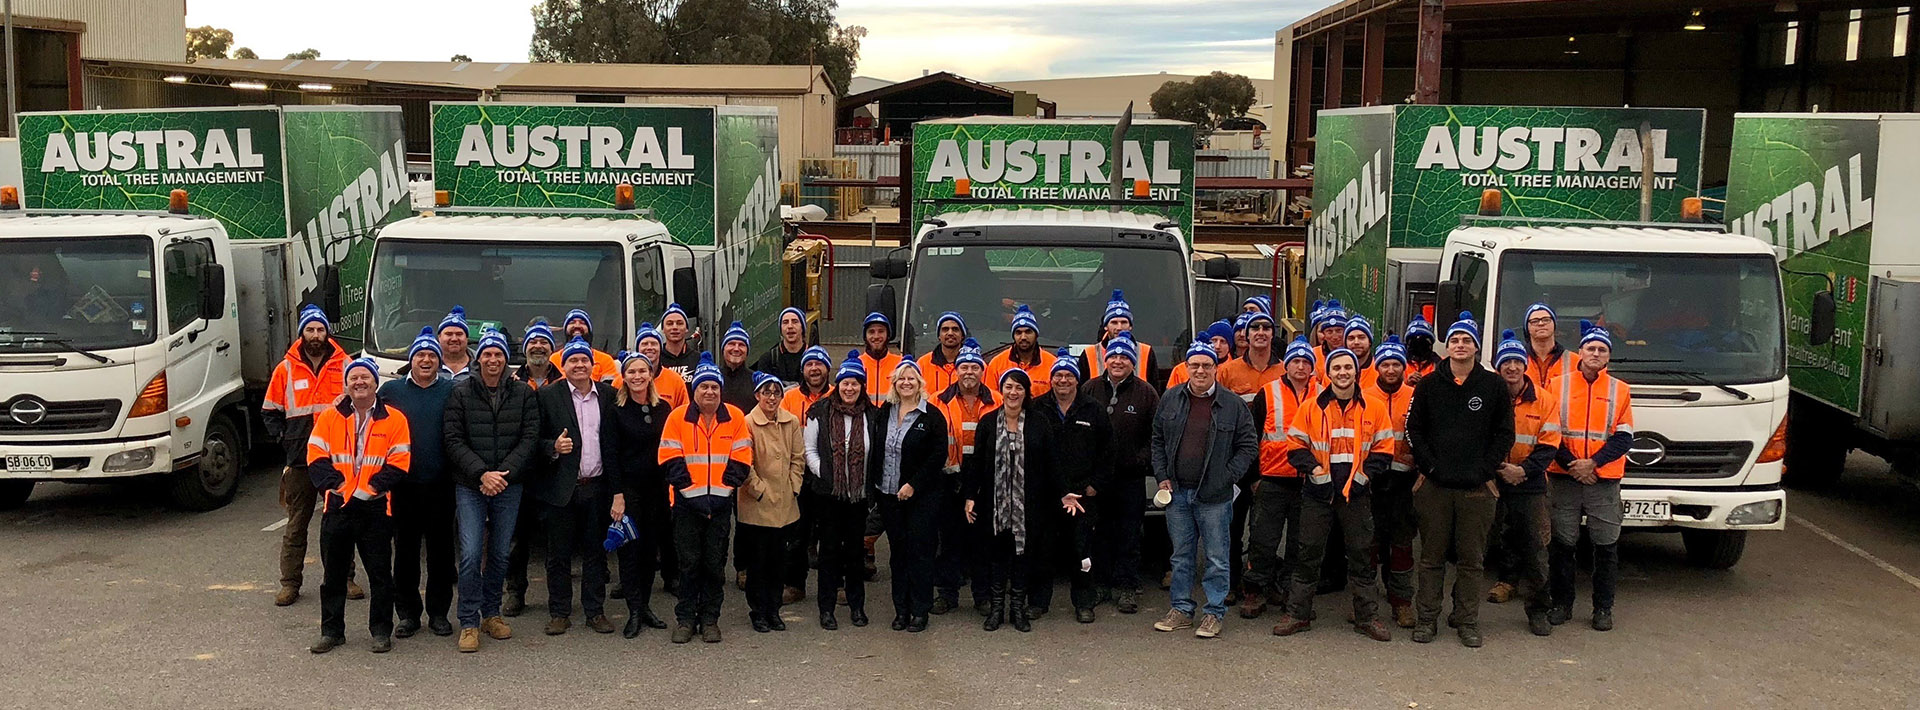 Working at Austral is more than just a job